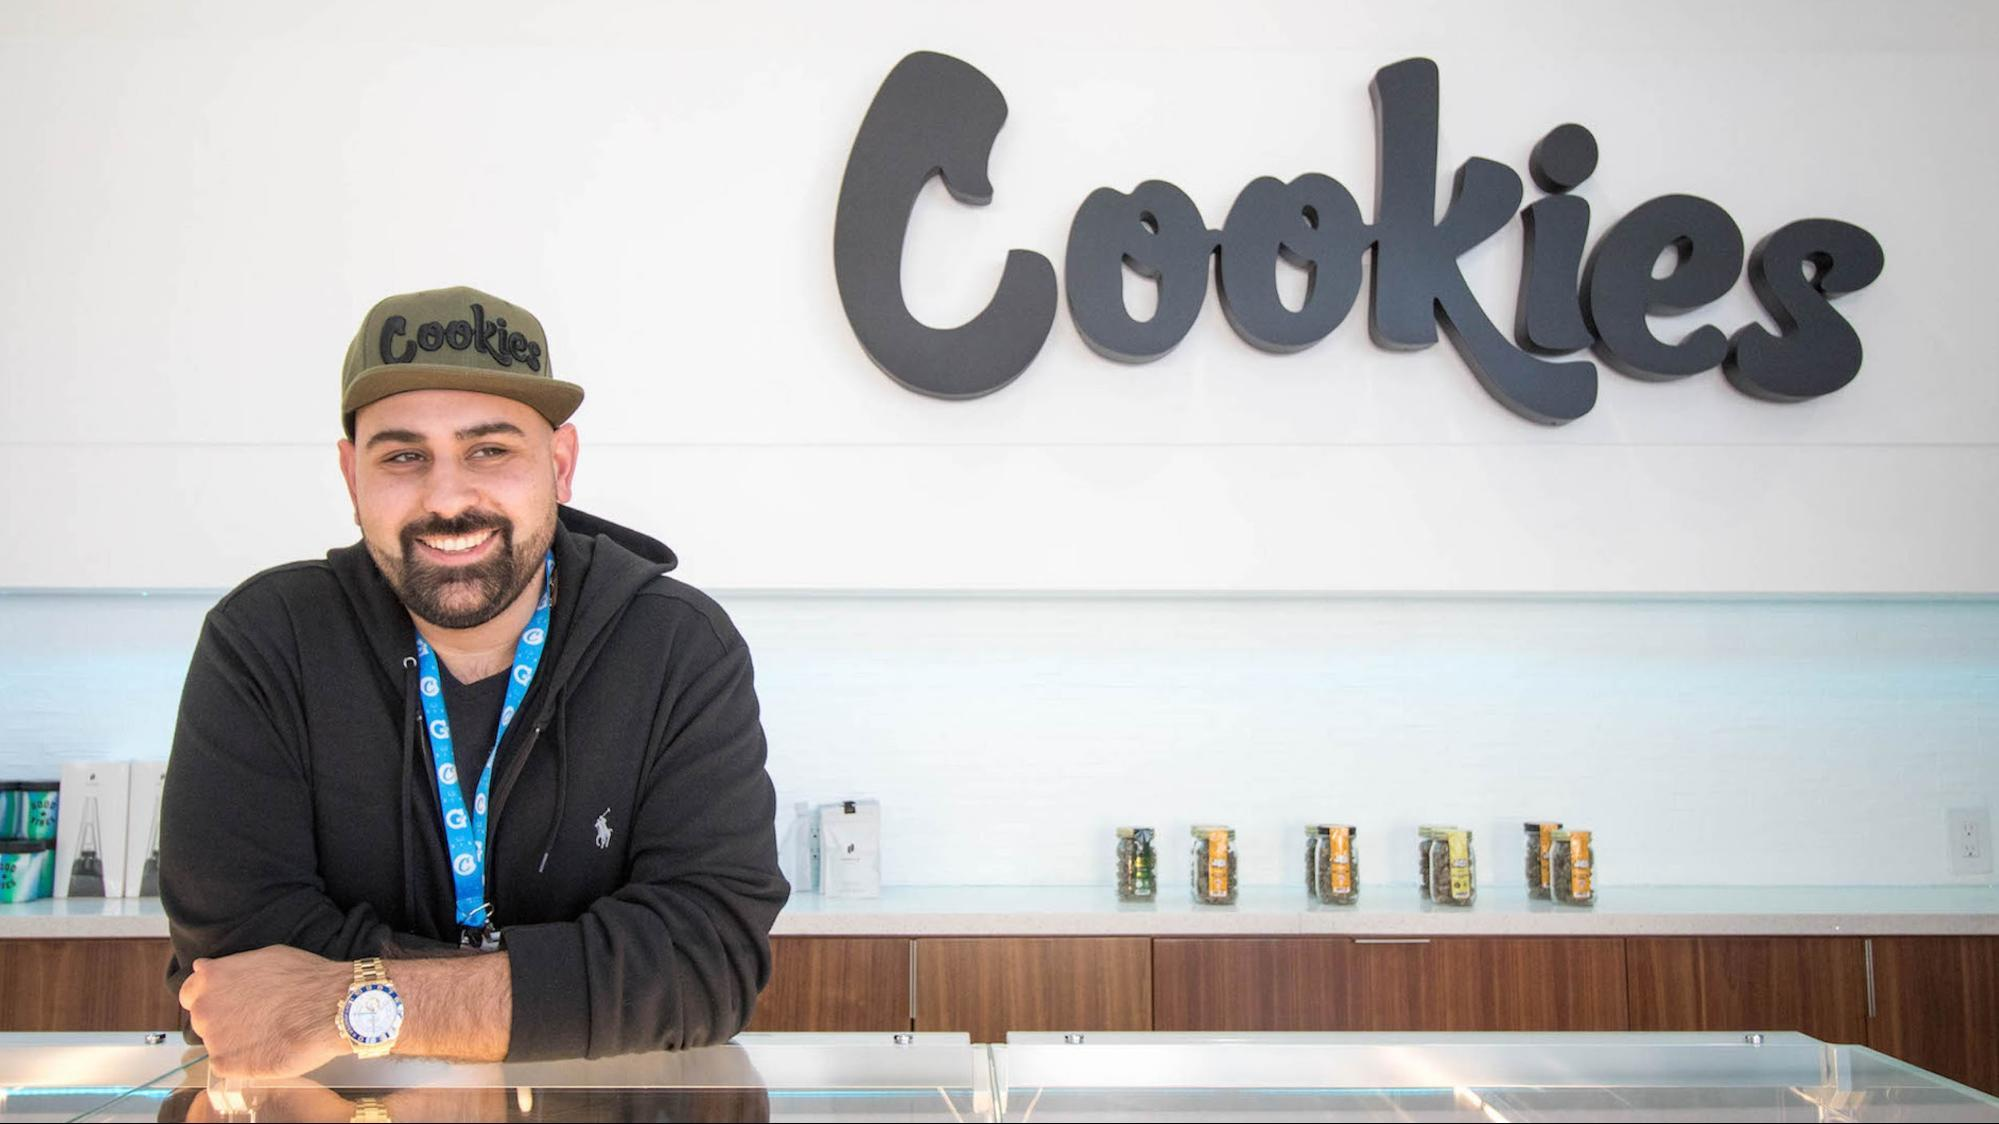 cookies melrose dispensary store manager